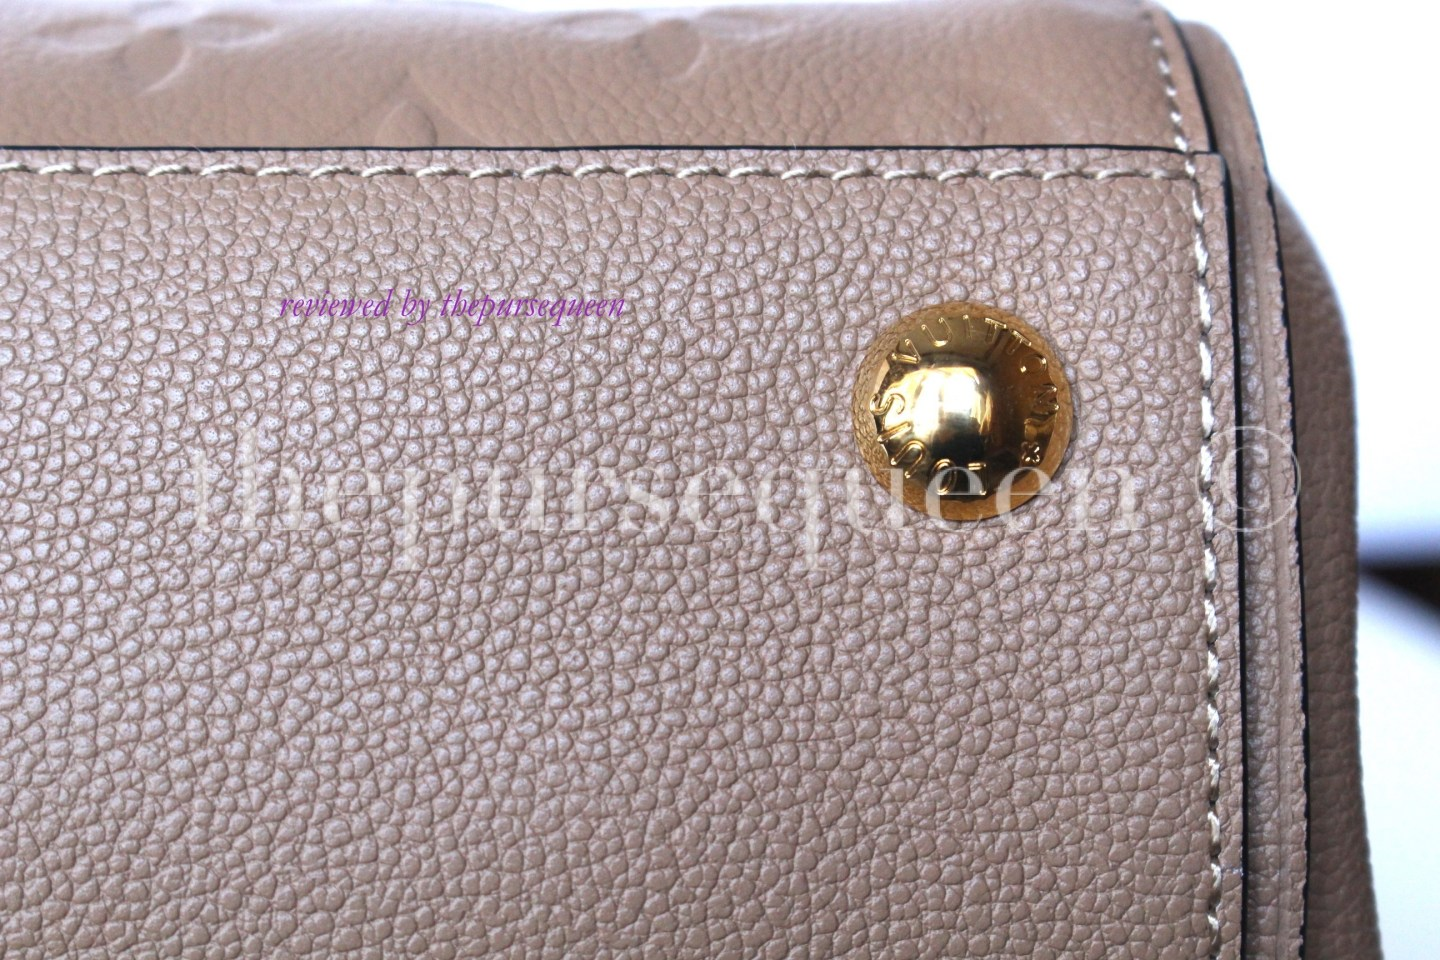 louis vuitton empreinte Trocadero replica authentic review bag feet